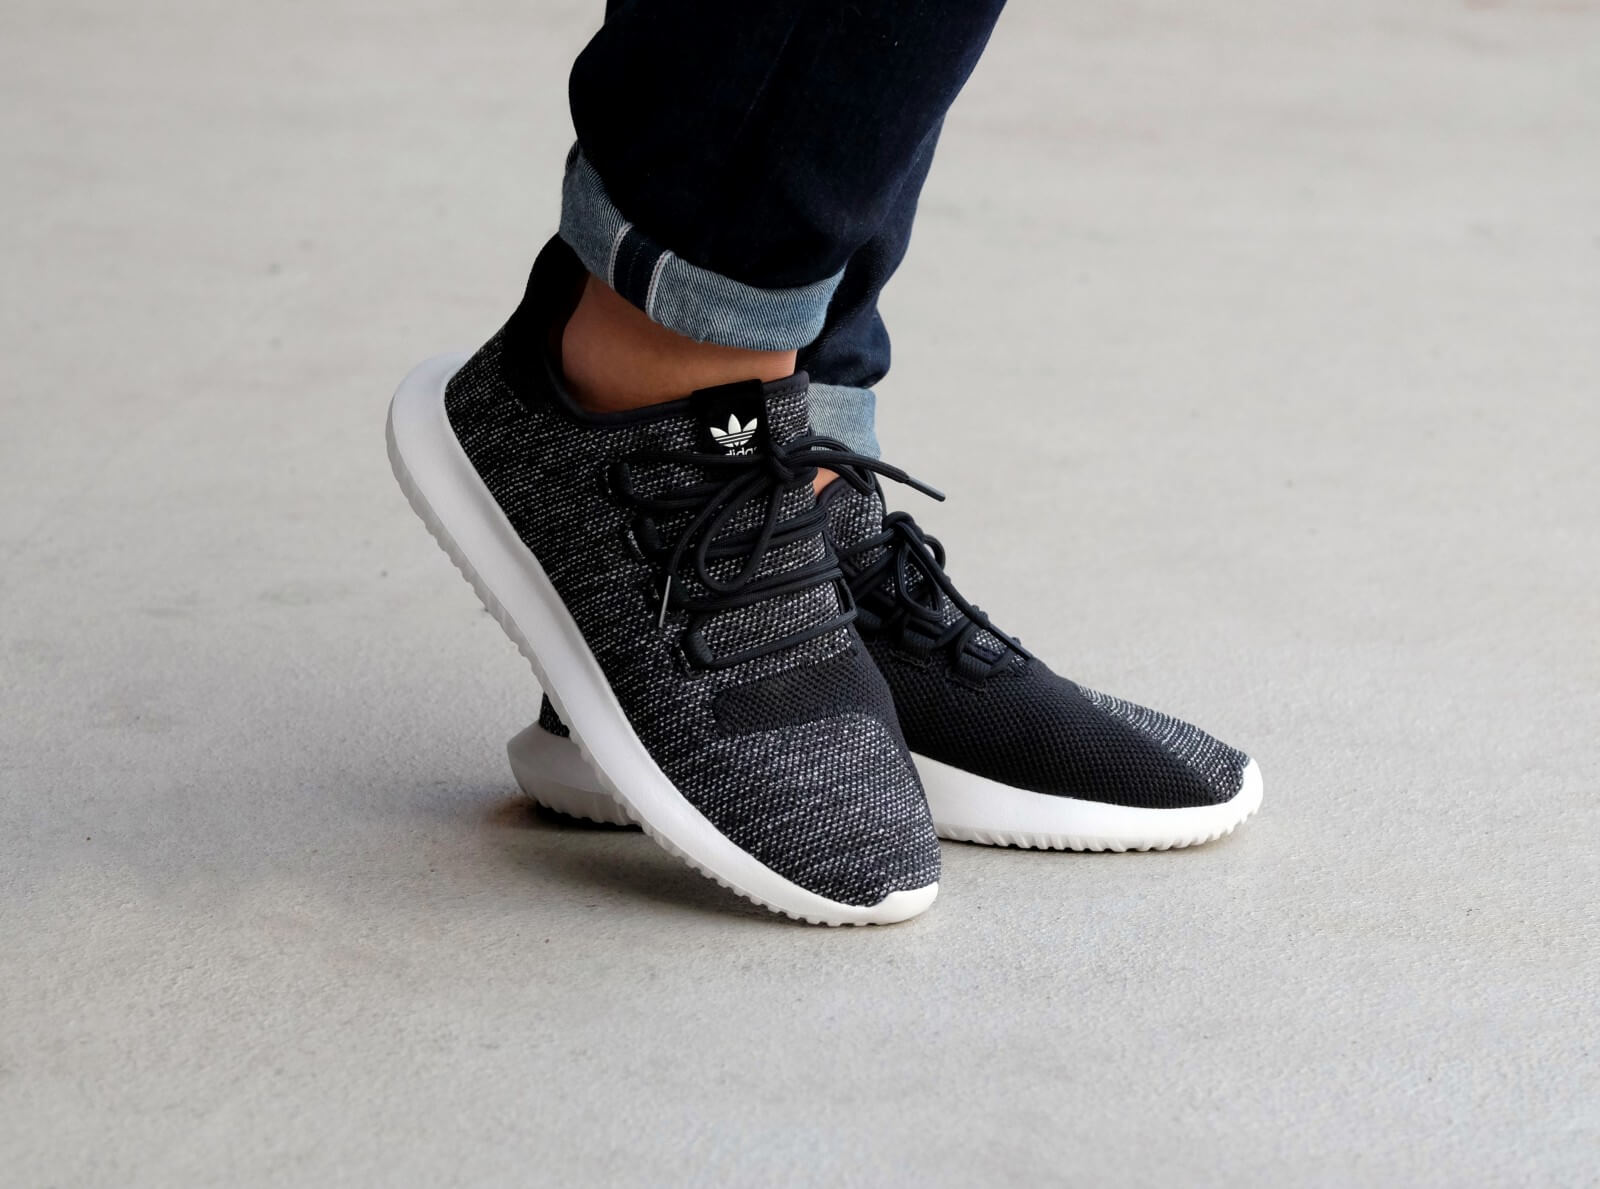 Adidas Tubular Shadow Knit Core Black Utility Black Vintage BB8826